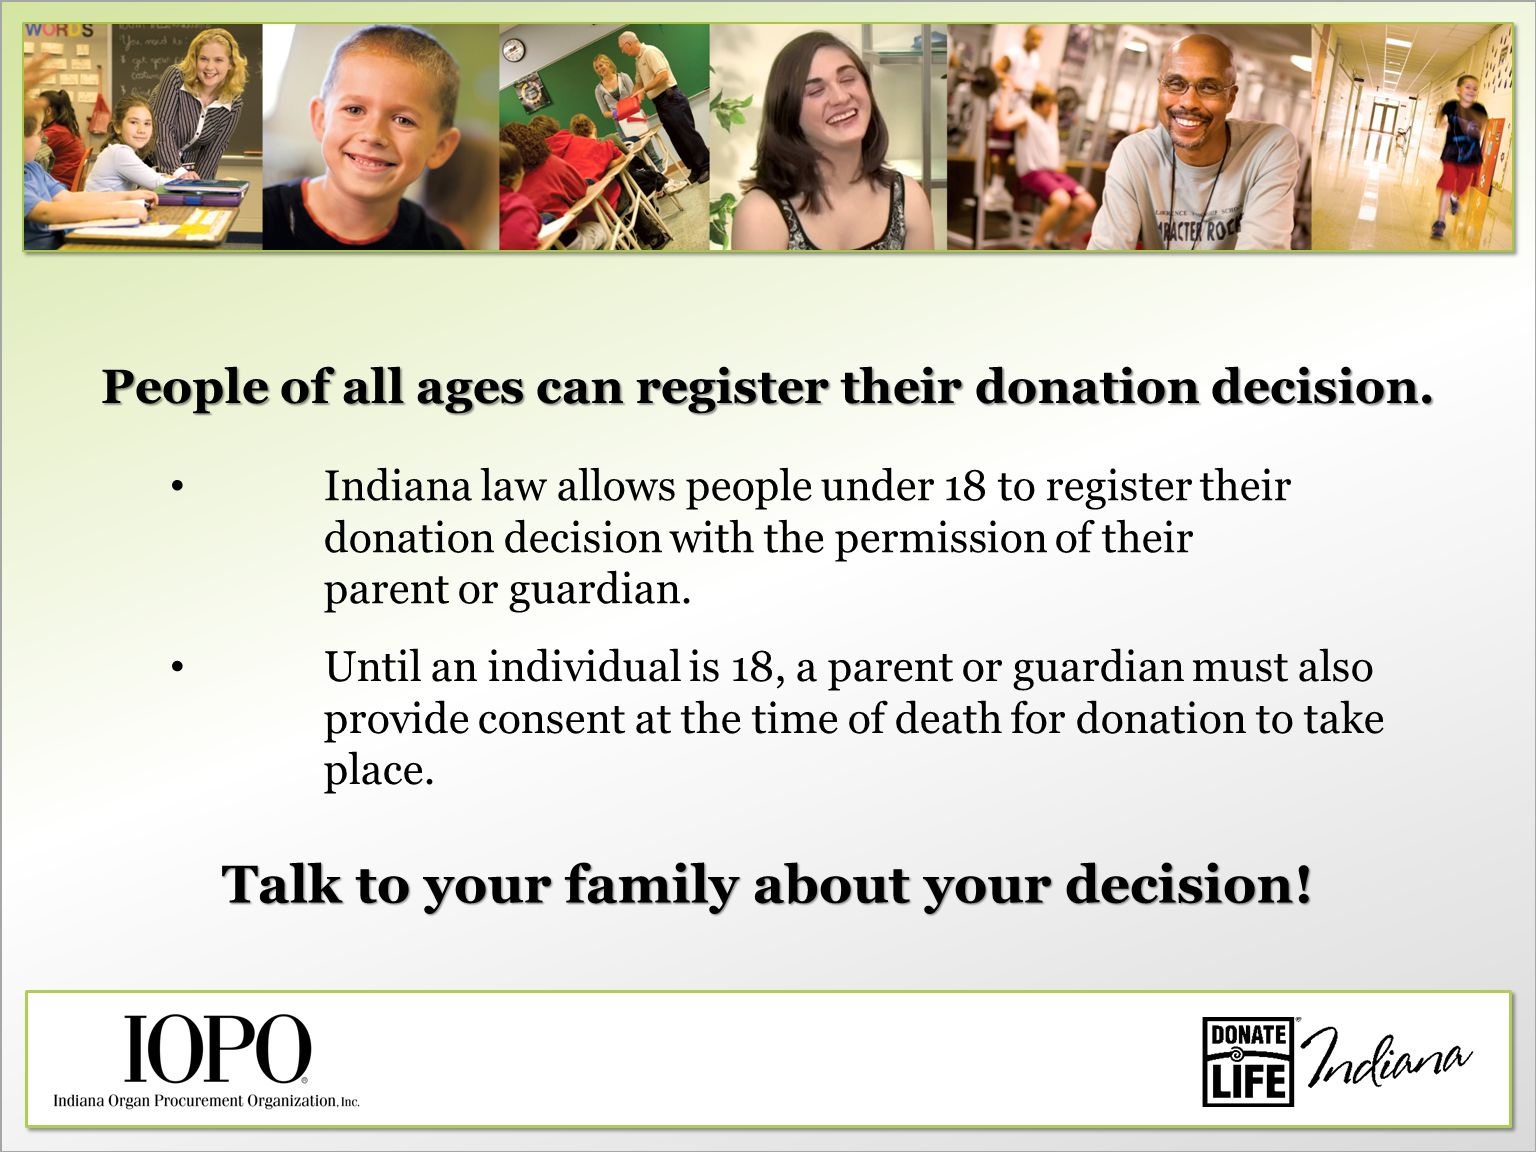 Talk to your family about your decision.